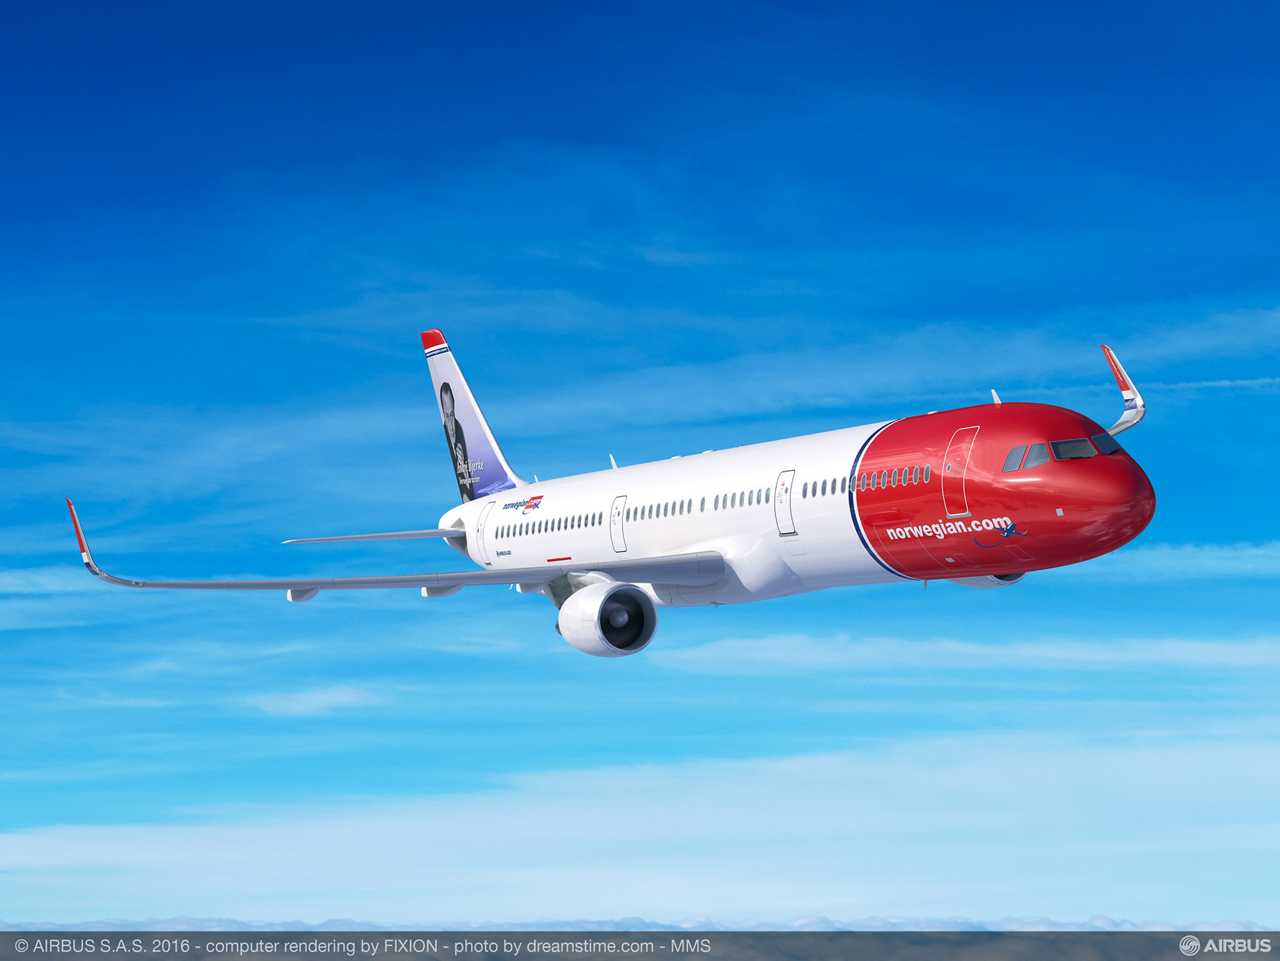 European carrier Norwegian will be the first low-cost transatlantic operator with the Airbus A321LR based on a firm order for 30 aircraft announced 14 July 2016